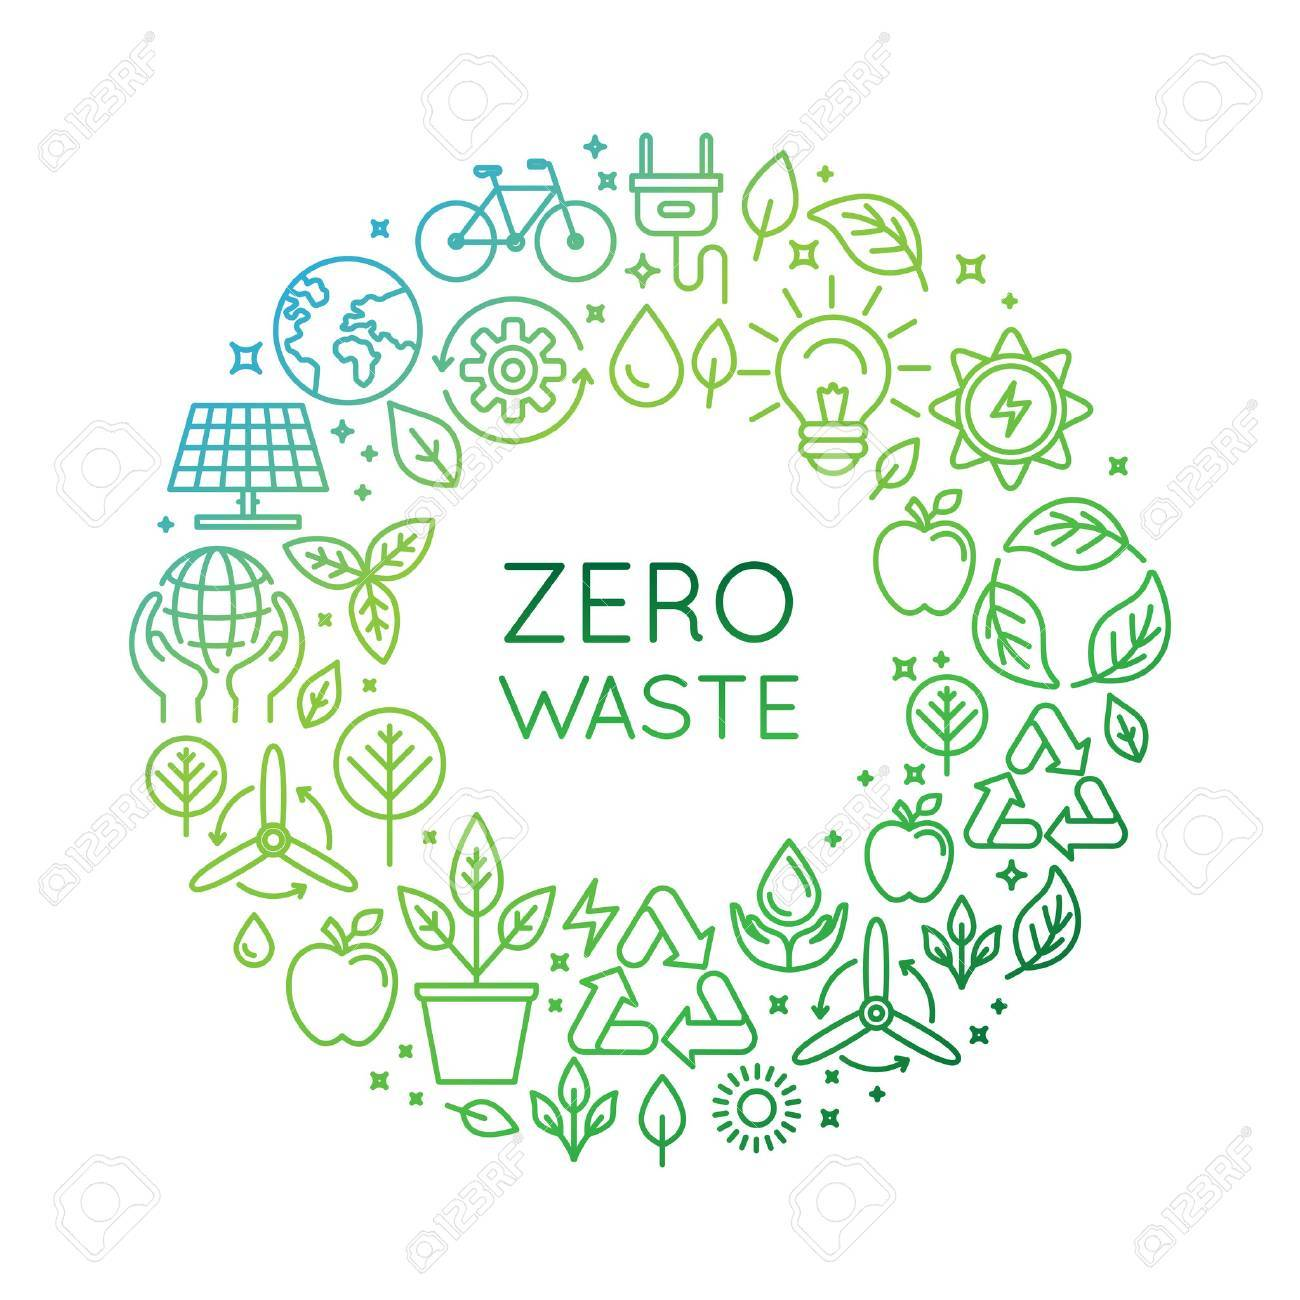 Vector design template and badge in trendy linear style - zero waste concept, recycle and reuse, reduce - ecological lifestyle and sustainable developments icons - 63430784